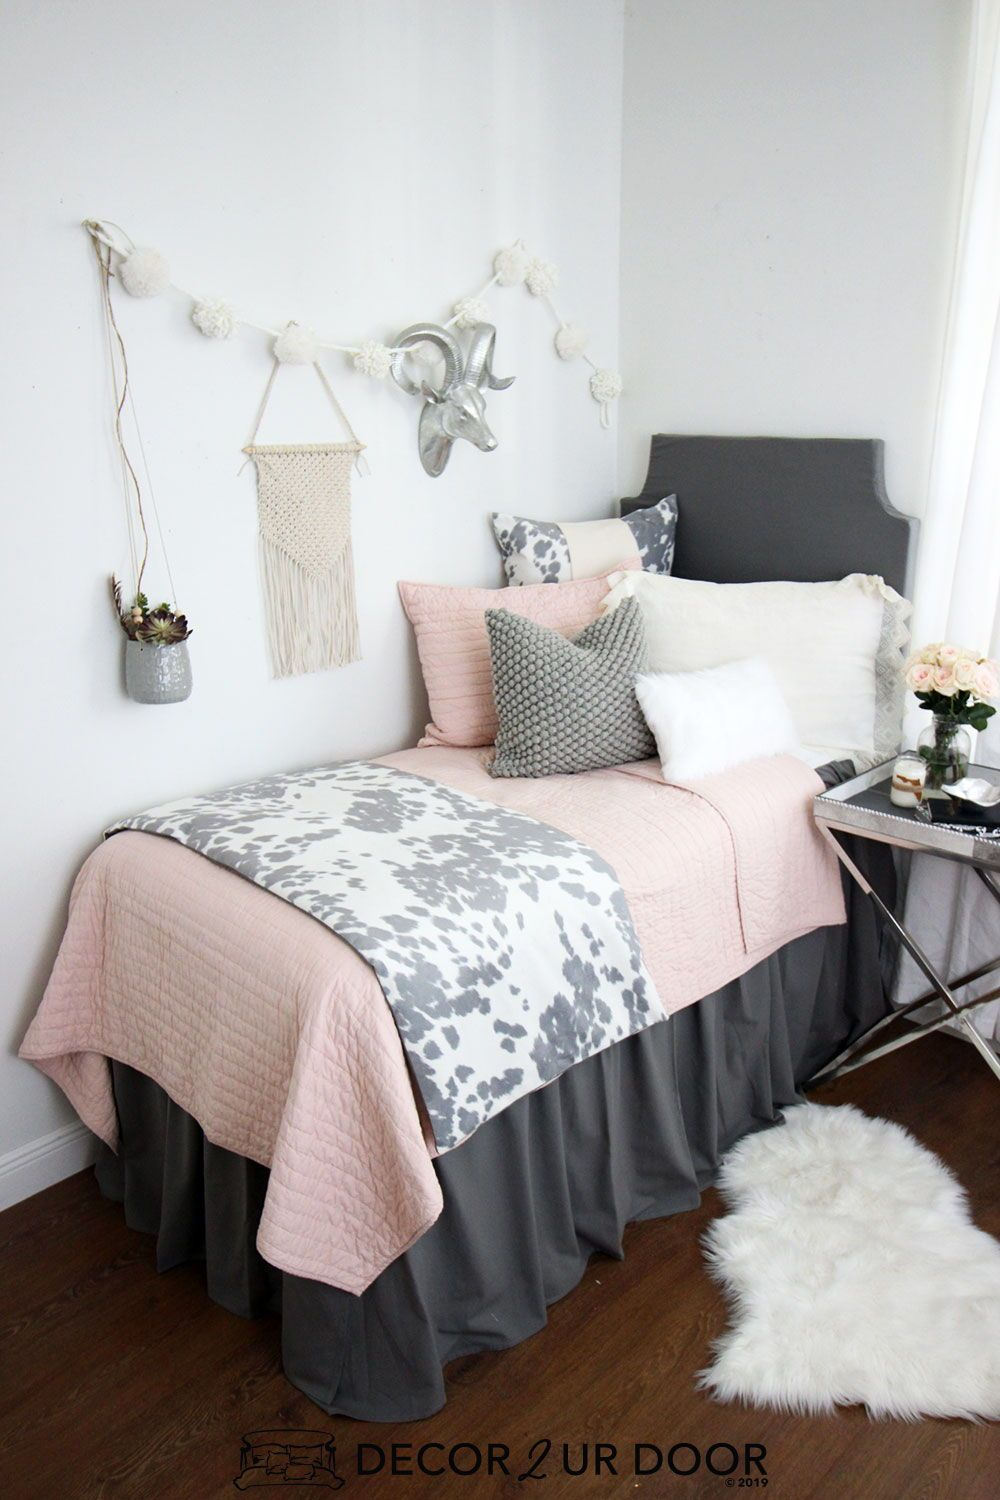 Blush Grey Cowhide Dorm Bedding Set In 2020 Dorm Bedding Sets Pink Dorm Rooms Dorm Bedding